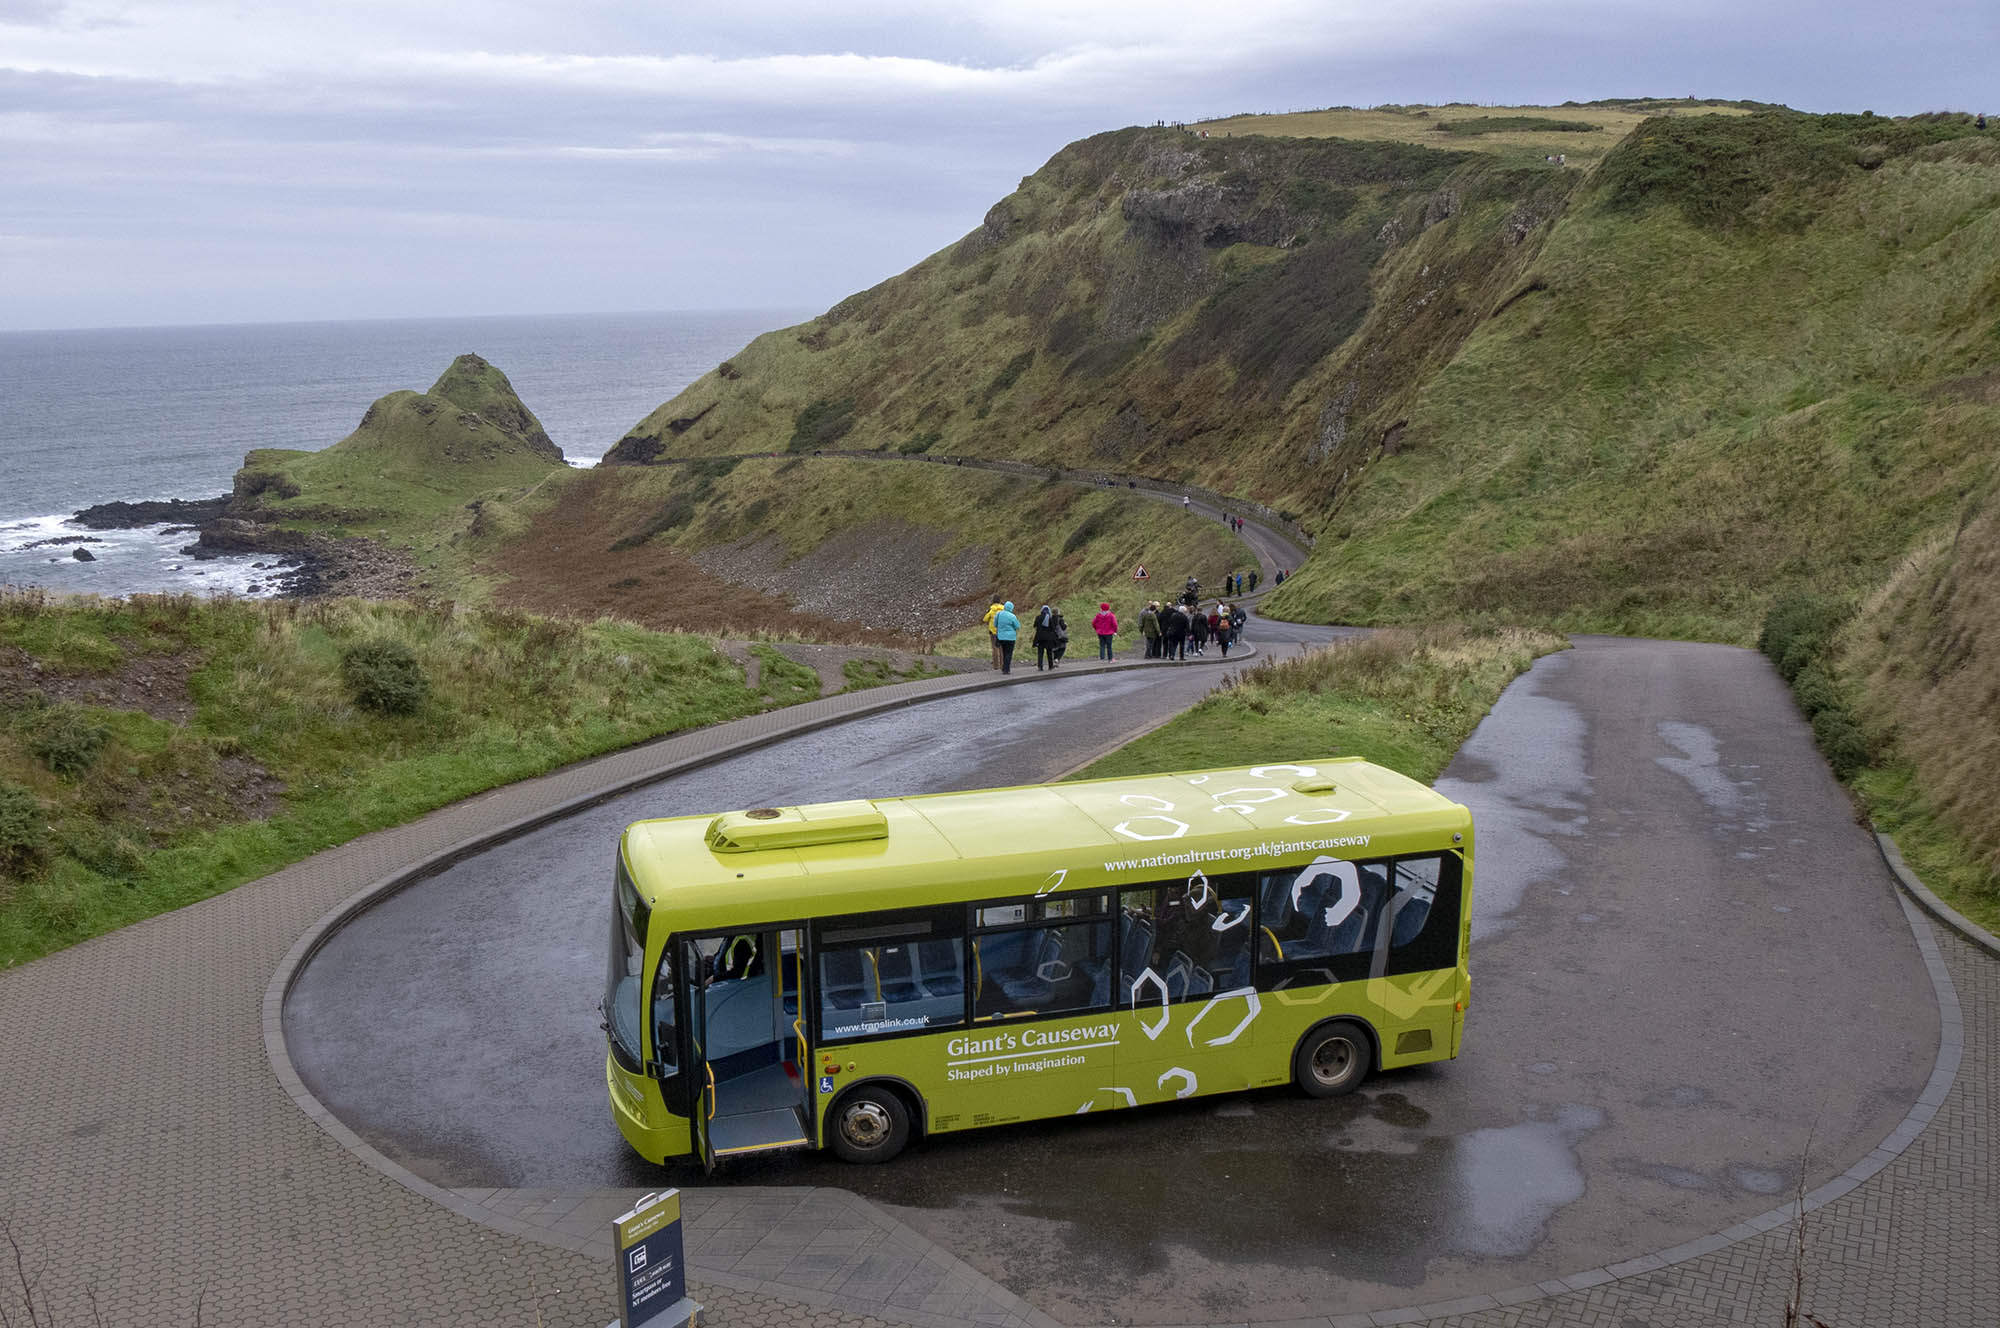 Giant's Causeway Without a Tour